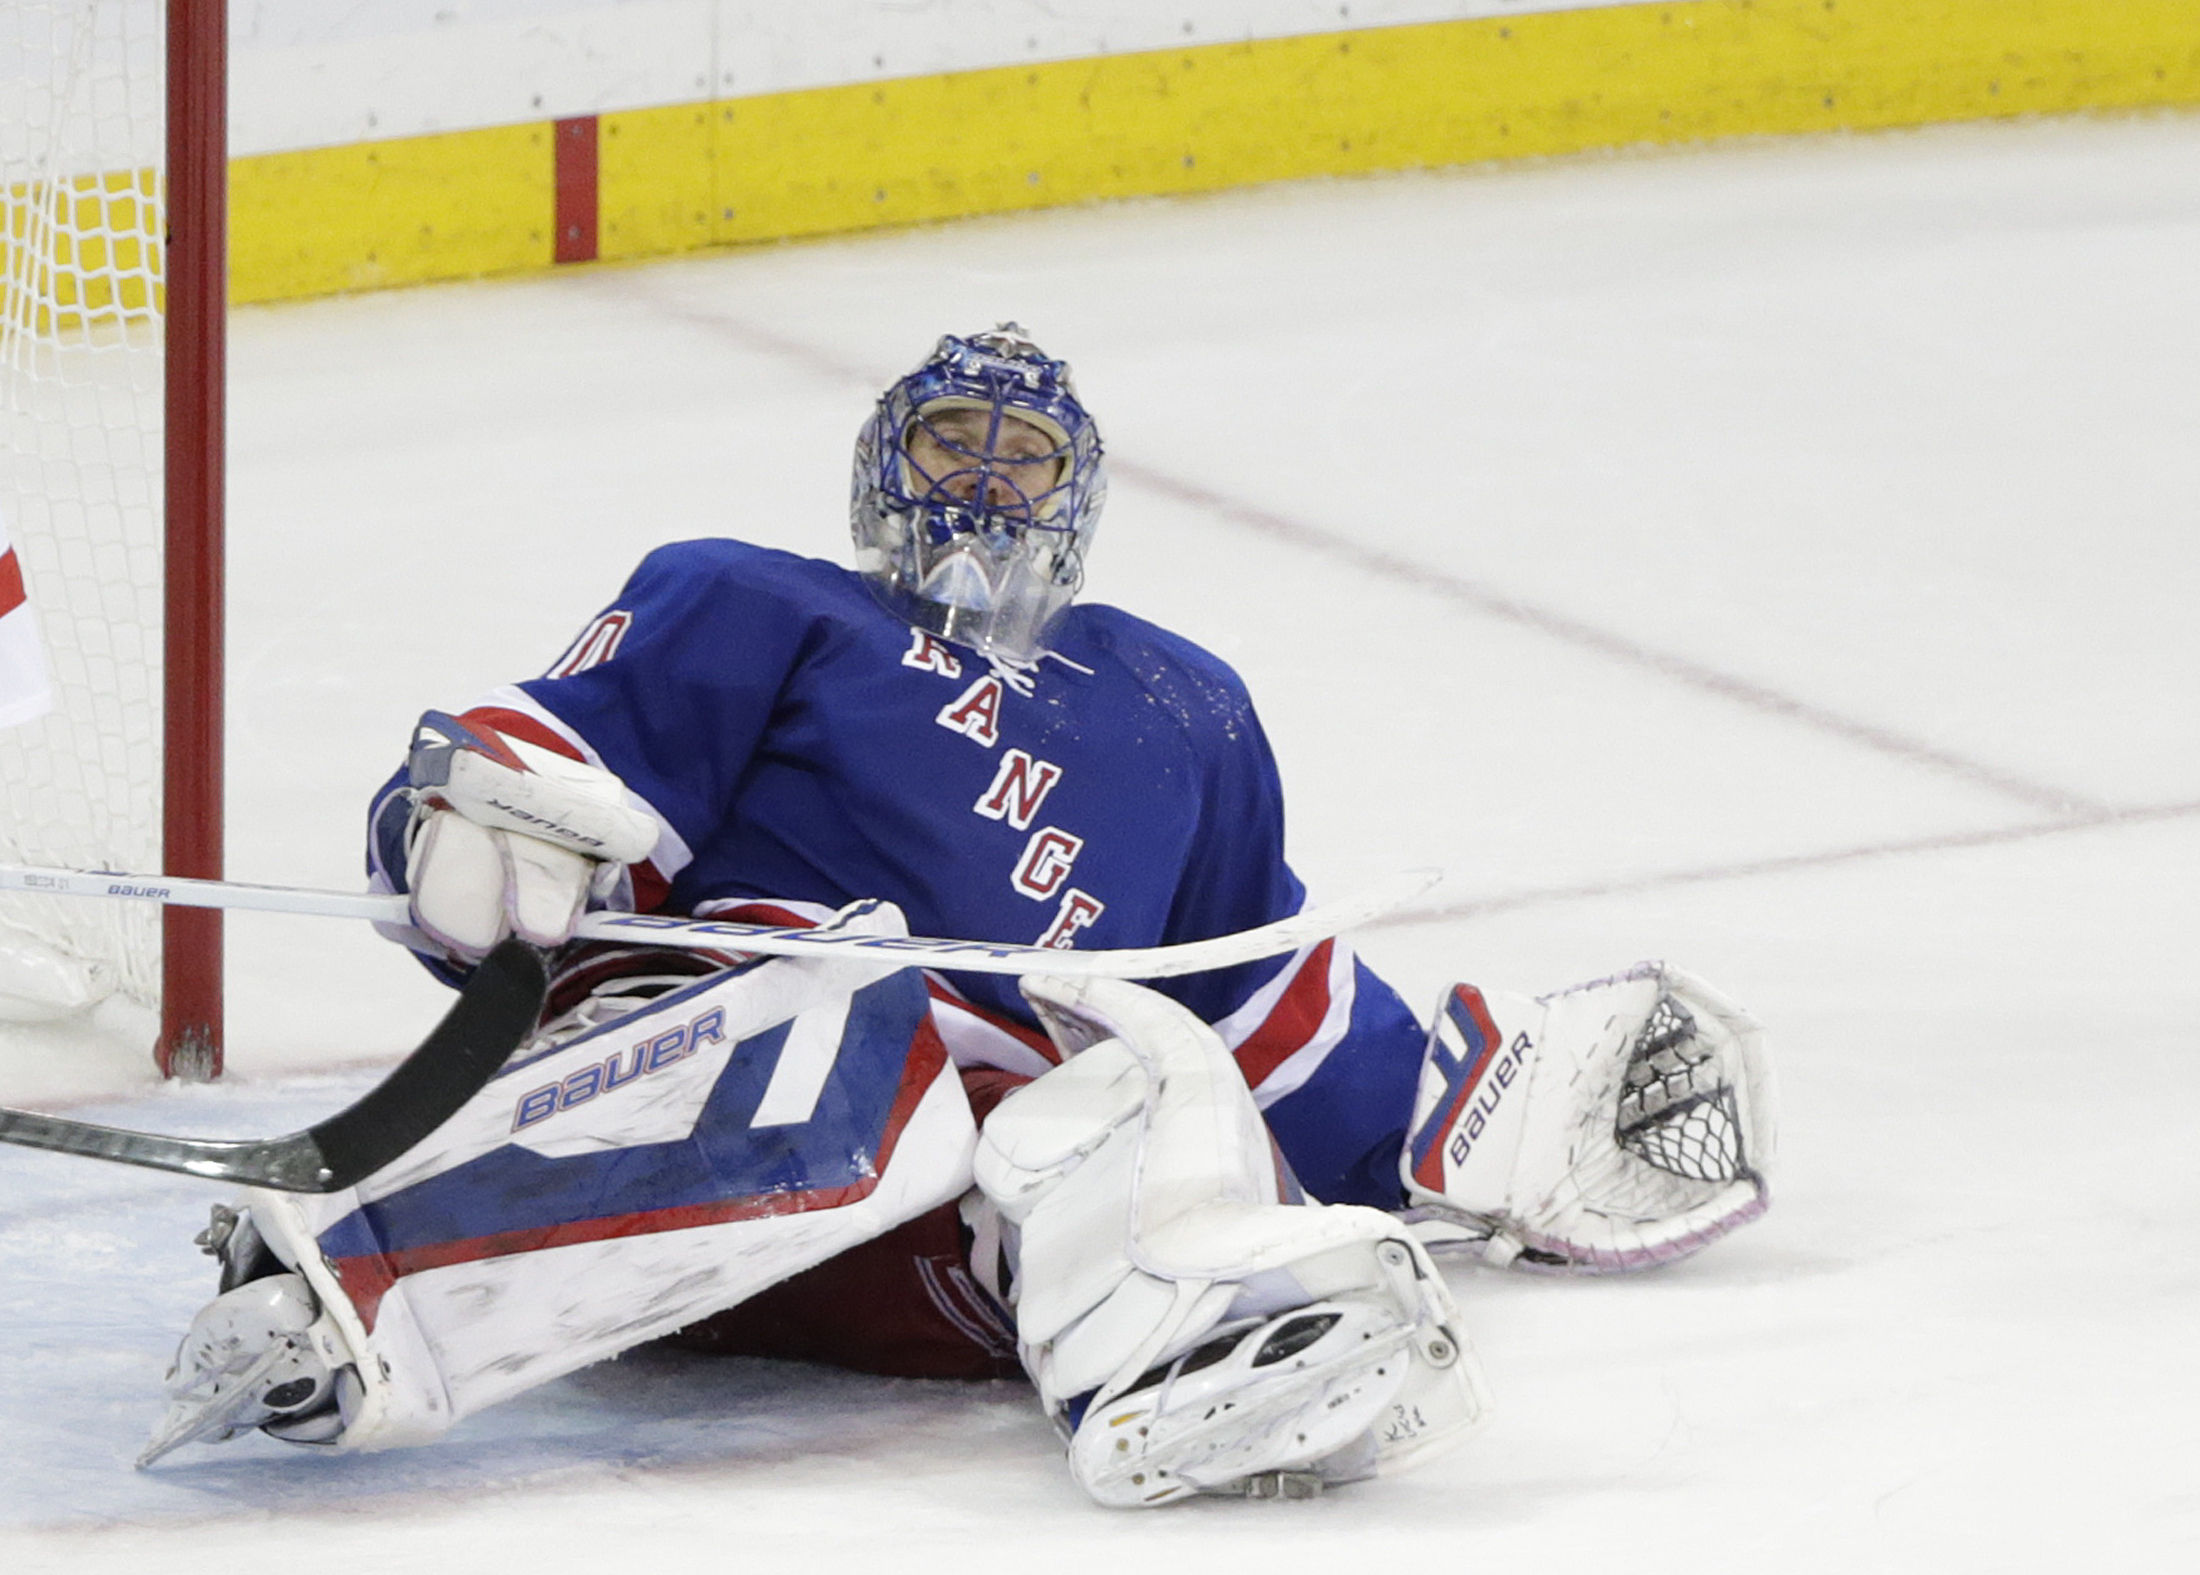 New York Rangers goalie Henrik Lundqvist rolls onto his back after giving up a goal to the Tampa Bay Lightning during the third period of Game 2 of the Eastern Conference final during the NHL hockey Stanley Cup playoffs, Monday, May 18, 2015, in New York.